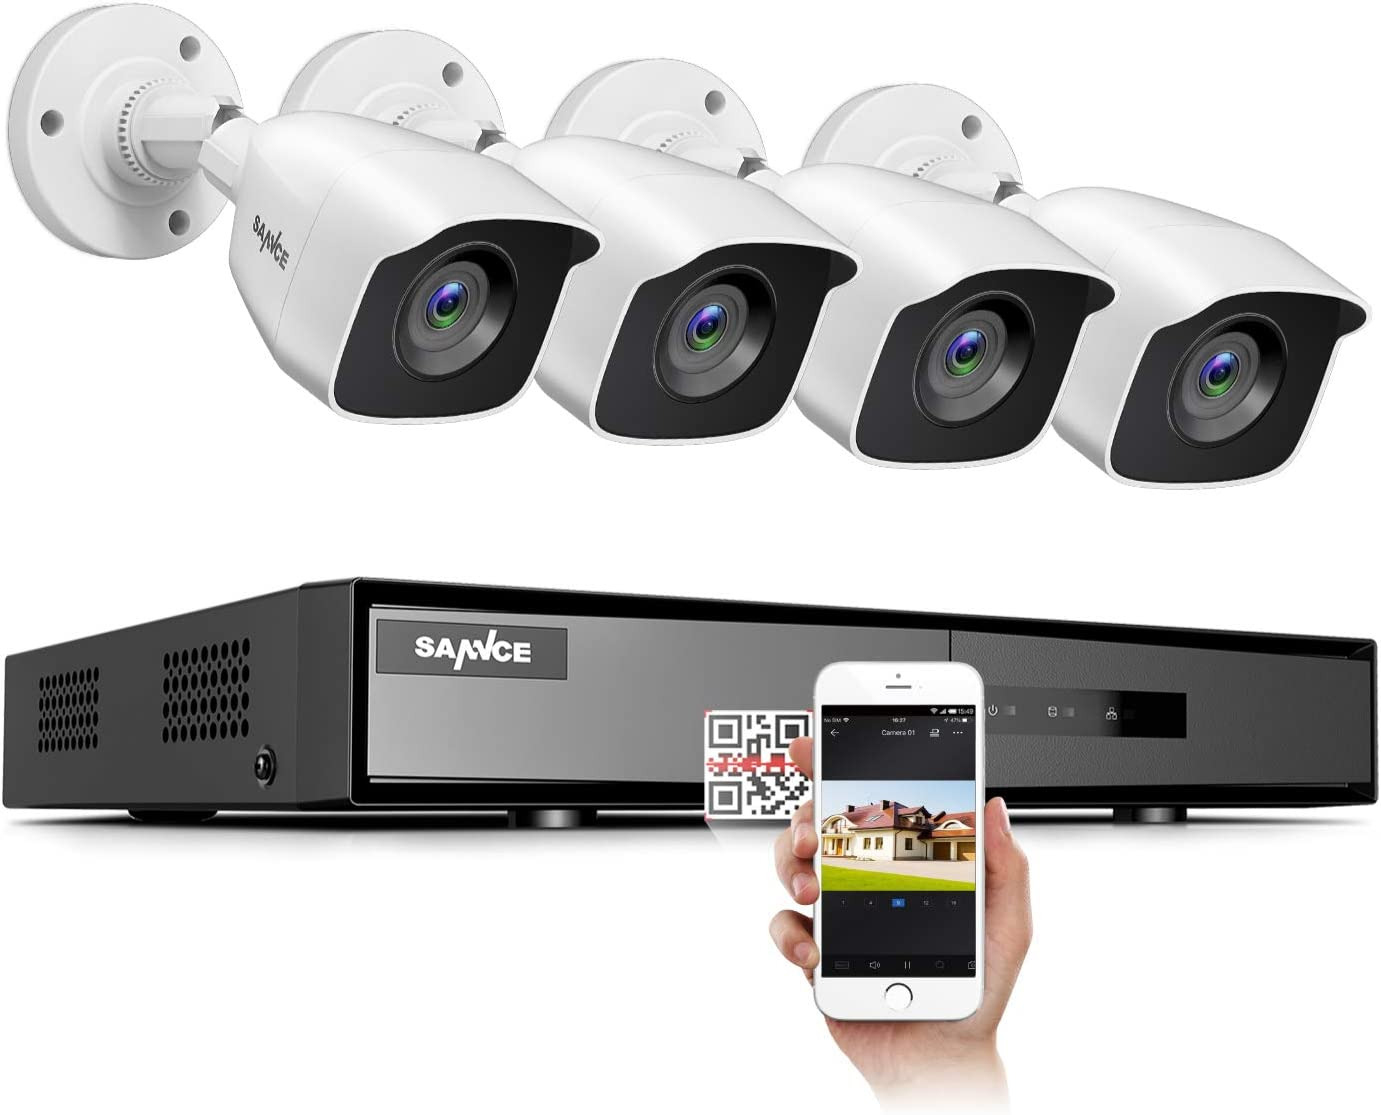 SANNCE Security Camera 8CH 1080N Surveillance DVR System and (4) 720P 1.0MP HD-TVI Weatherproof CCTV Cameras, Infrared Superior Night Vision, P2P & QR Code Scan Remote Access